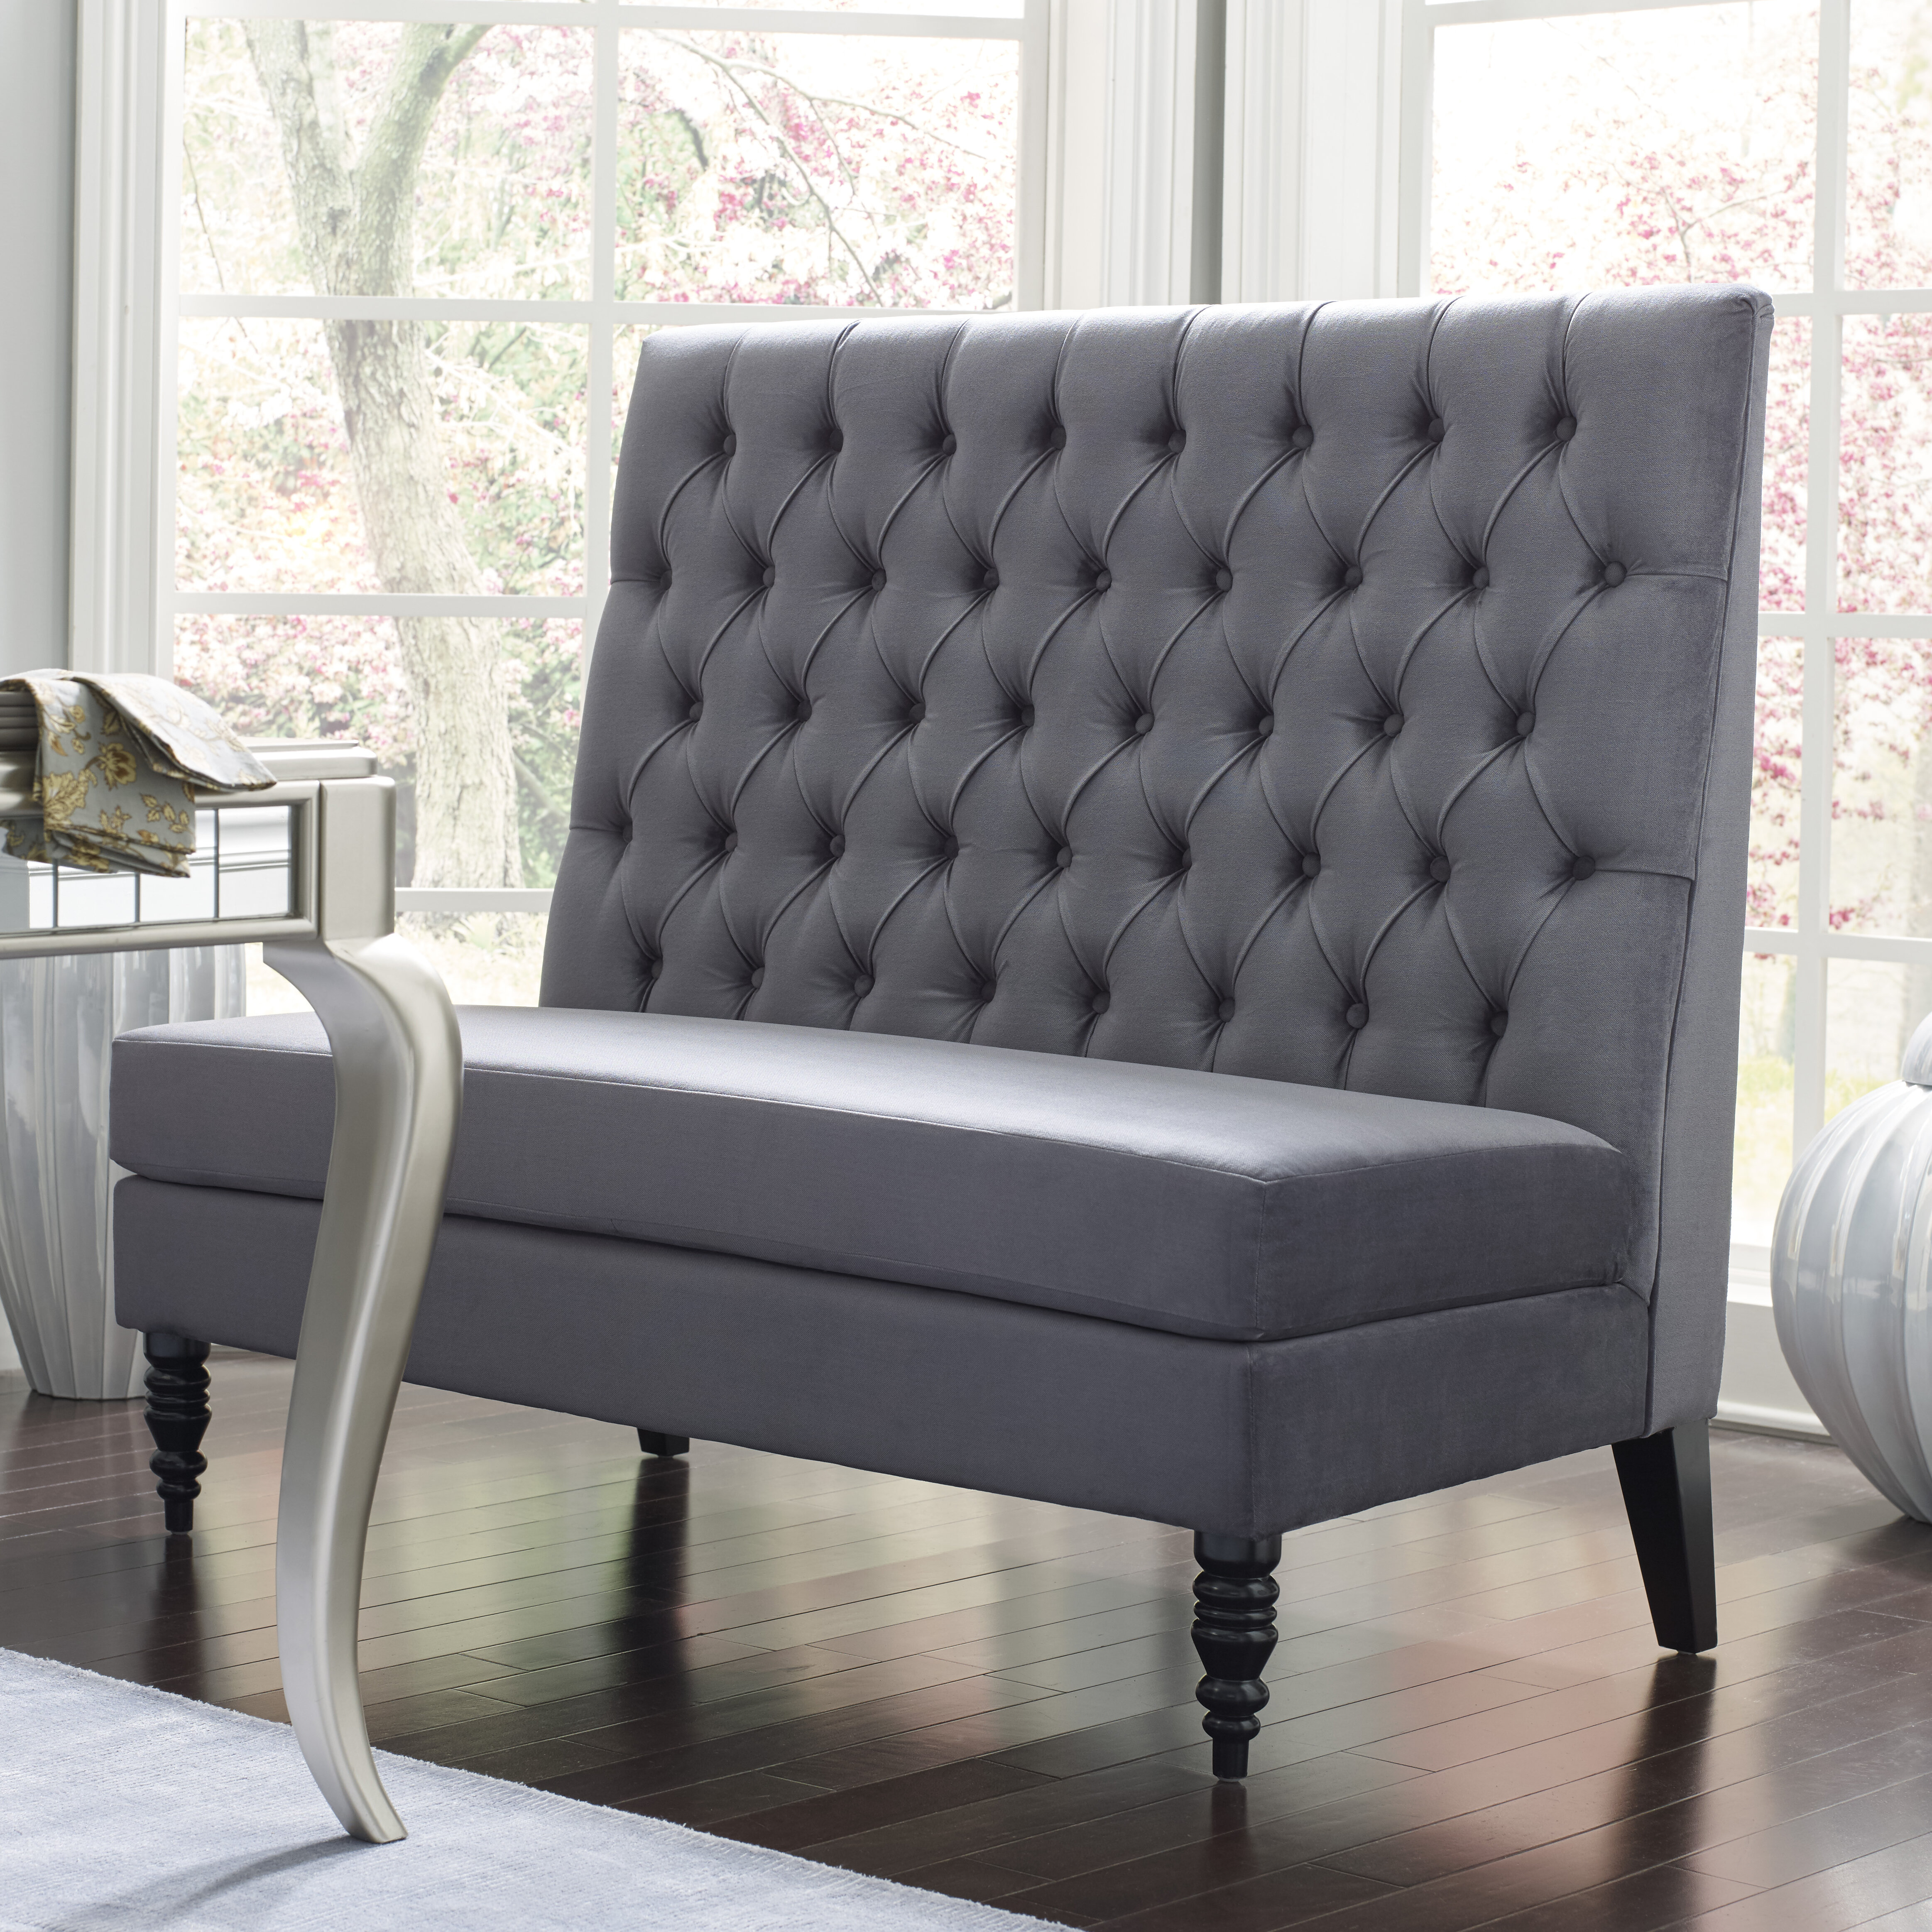 hemnes organizingikea bottom white end grey blue benches stools king furniture storage collection bradcarter ottoman trunk size bed ikea your solutions bench shoe gray next organizer awesome room glamorous foot large living tufted full upholstered of seat small ideas for to bedroom long